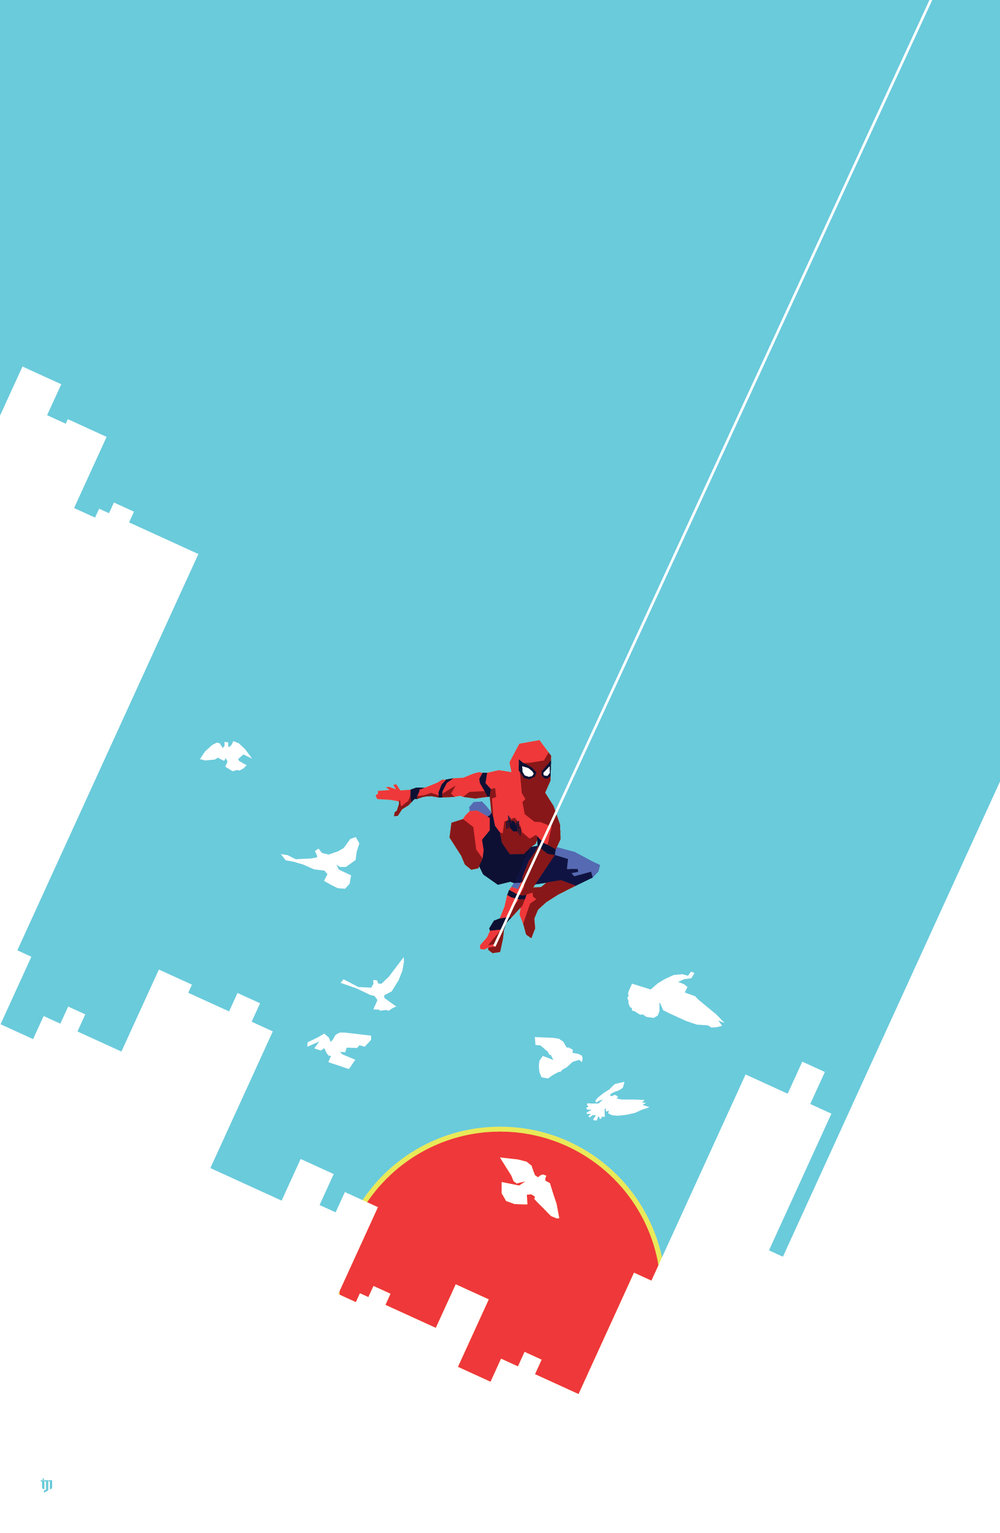 Spiderman-07.jpg